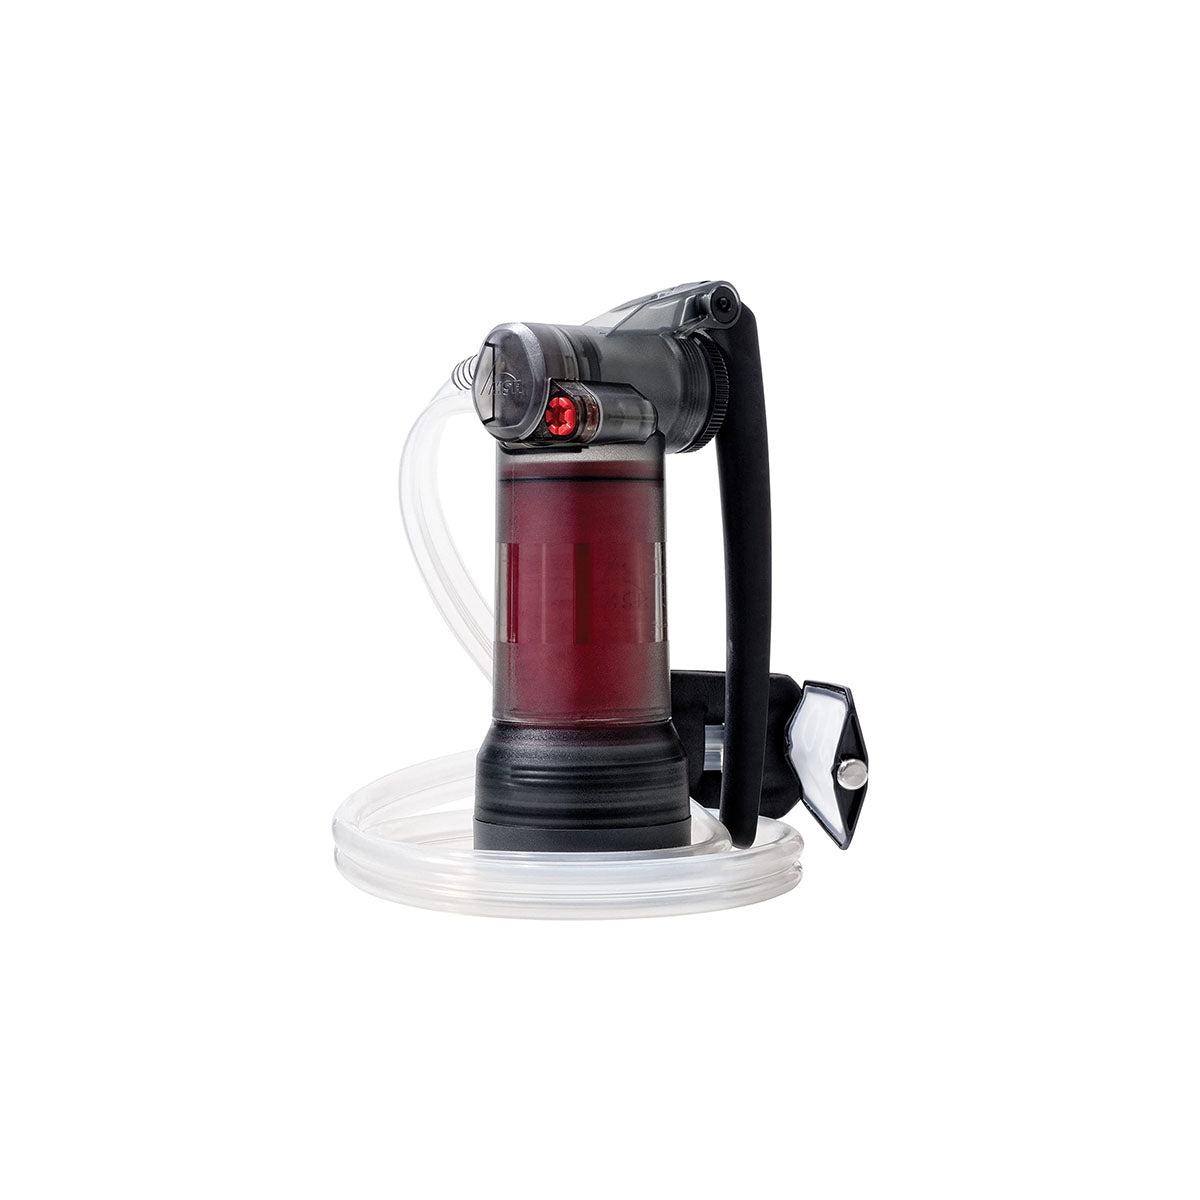 Water Filters & Purifiers: MSR Guardian Water Purifier Pump